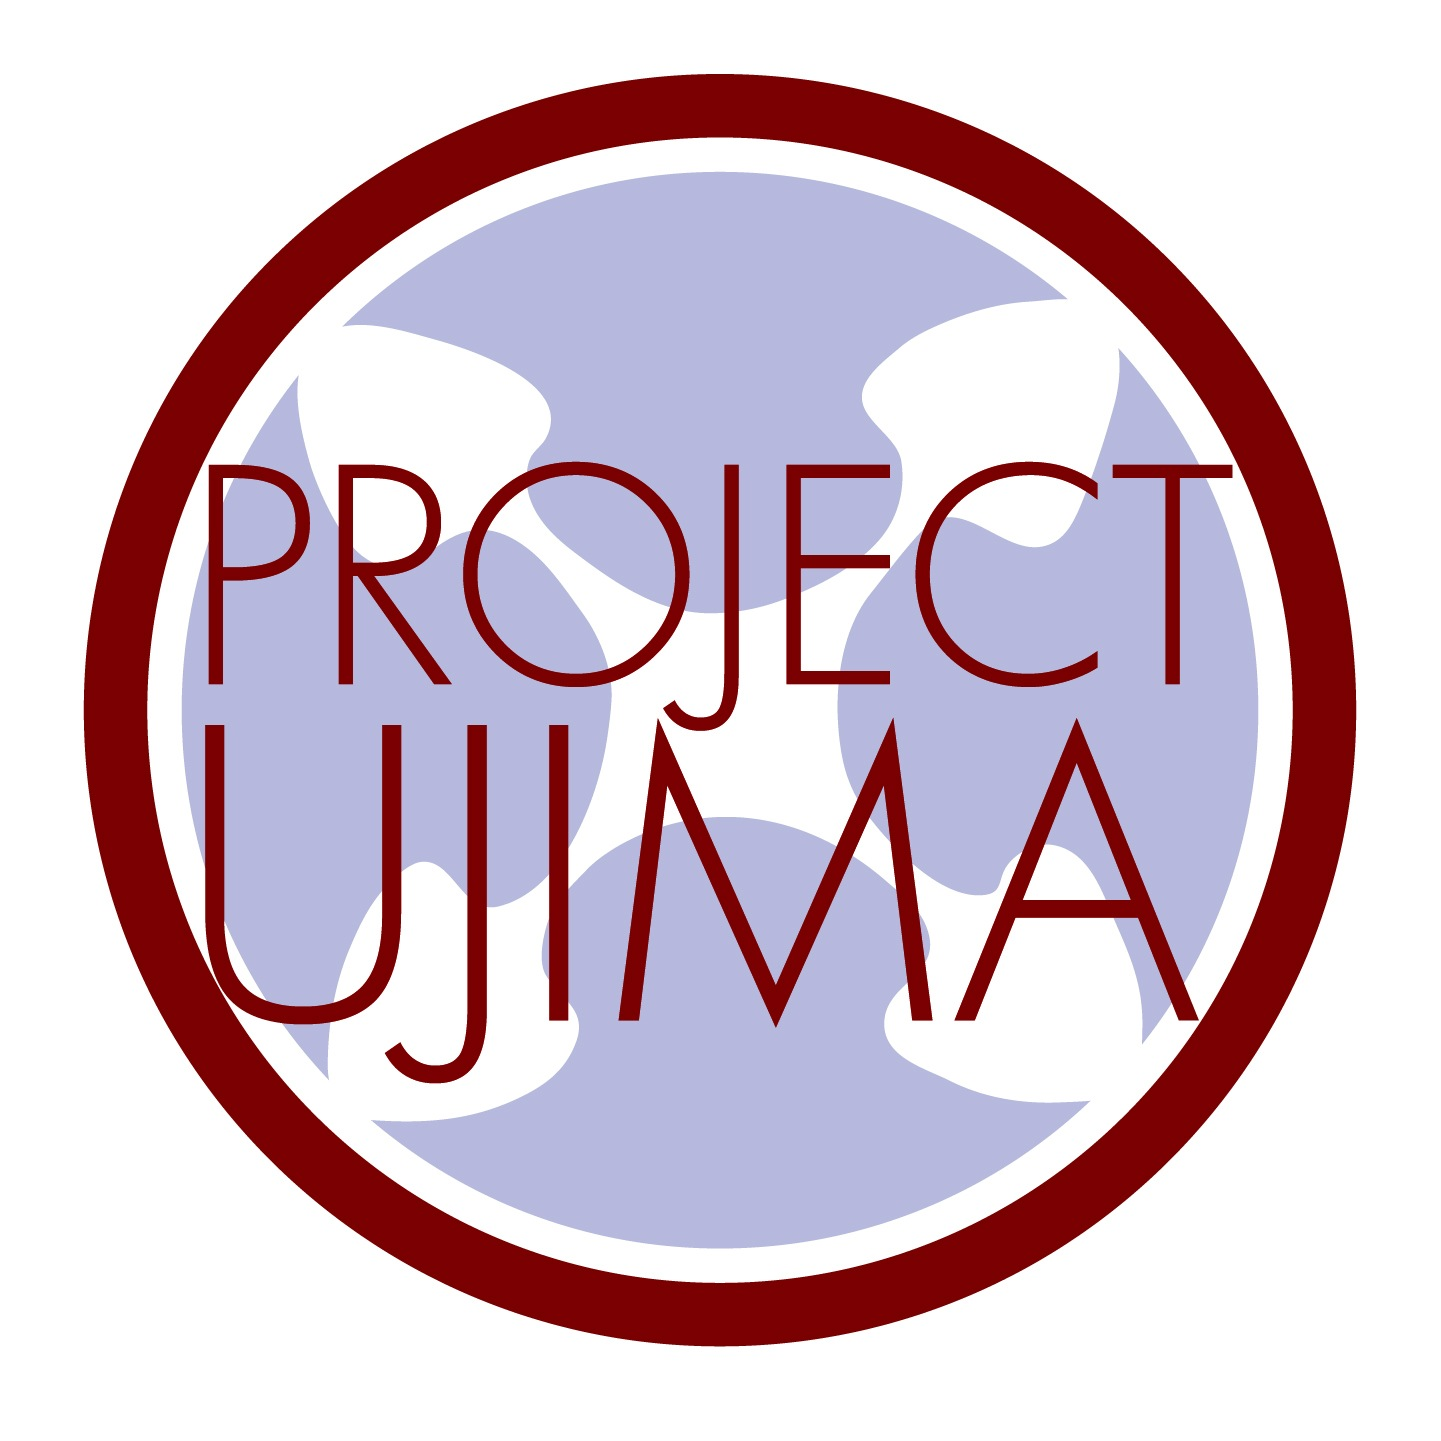 Project Ujima - Joseph Edelin